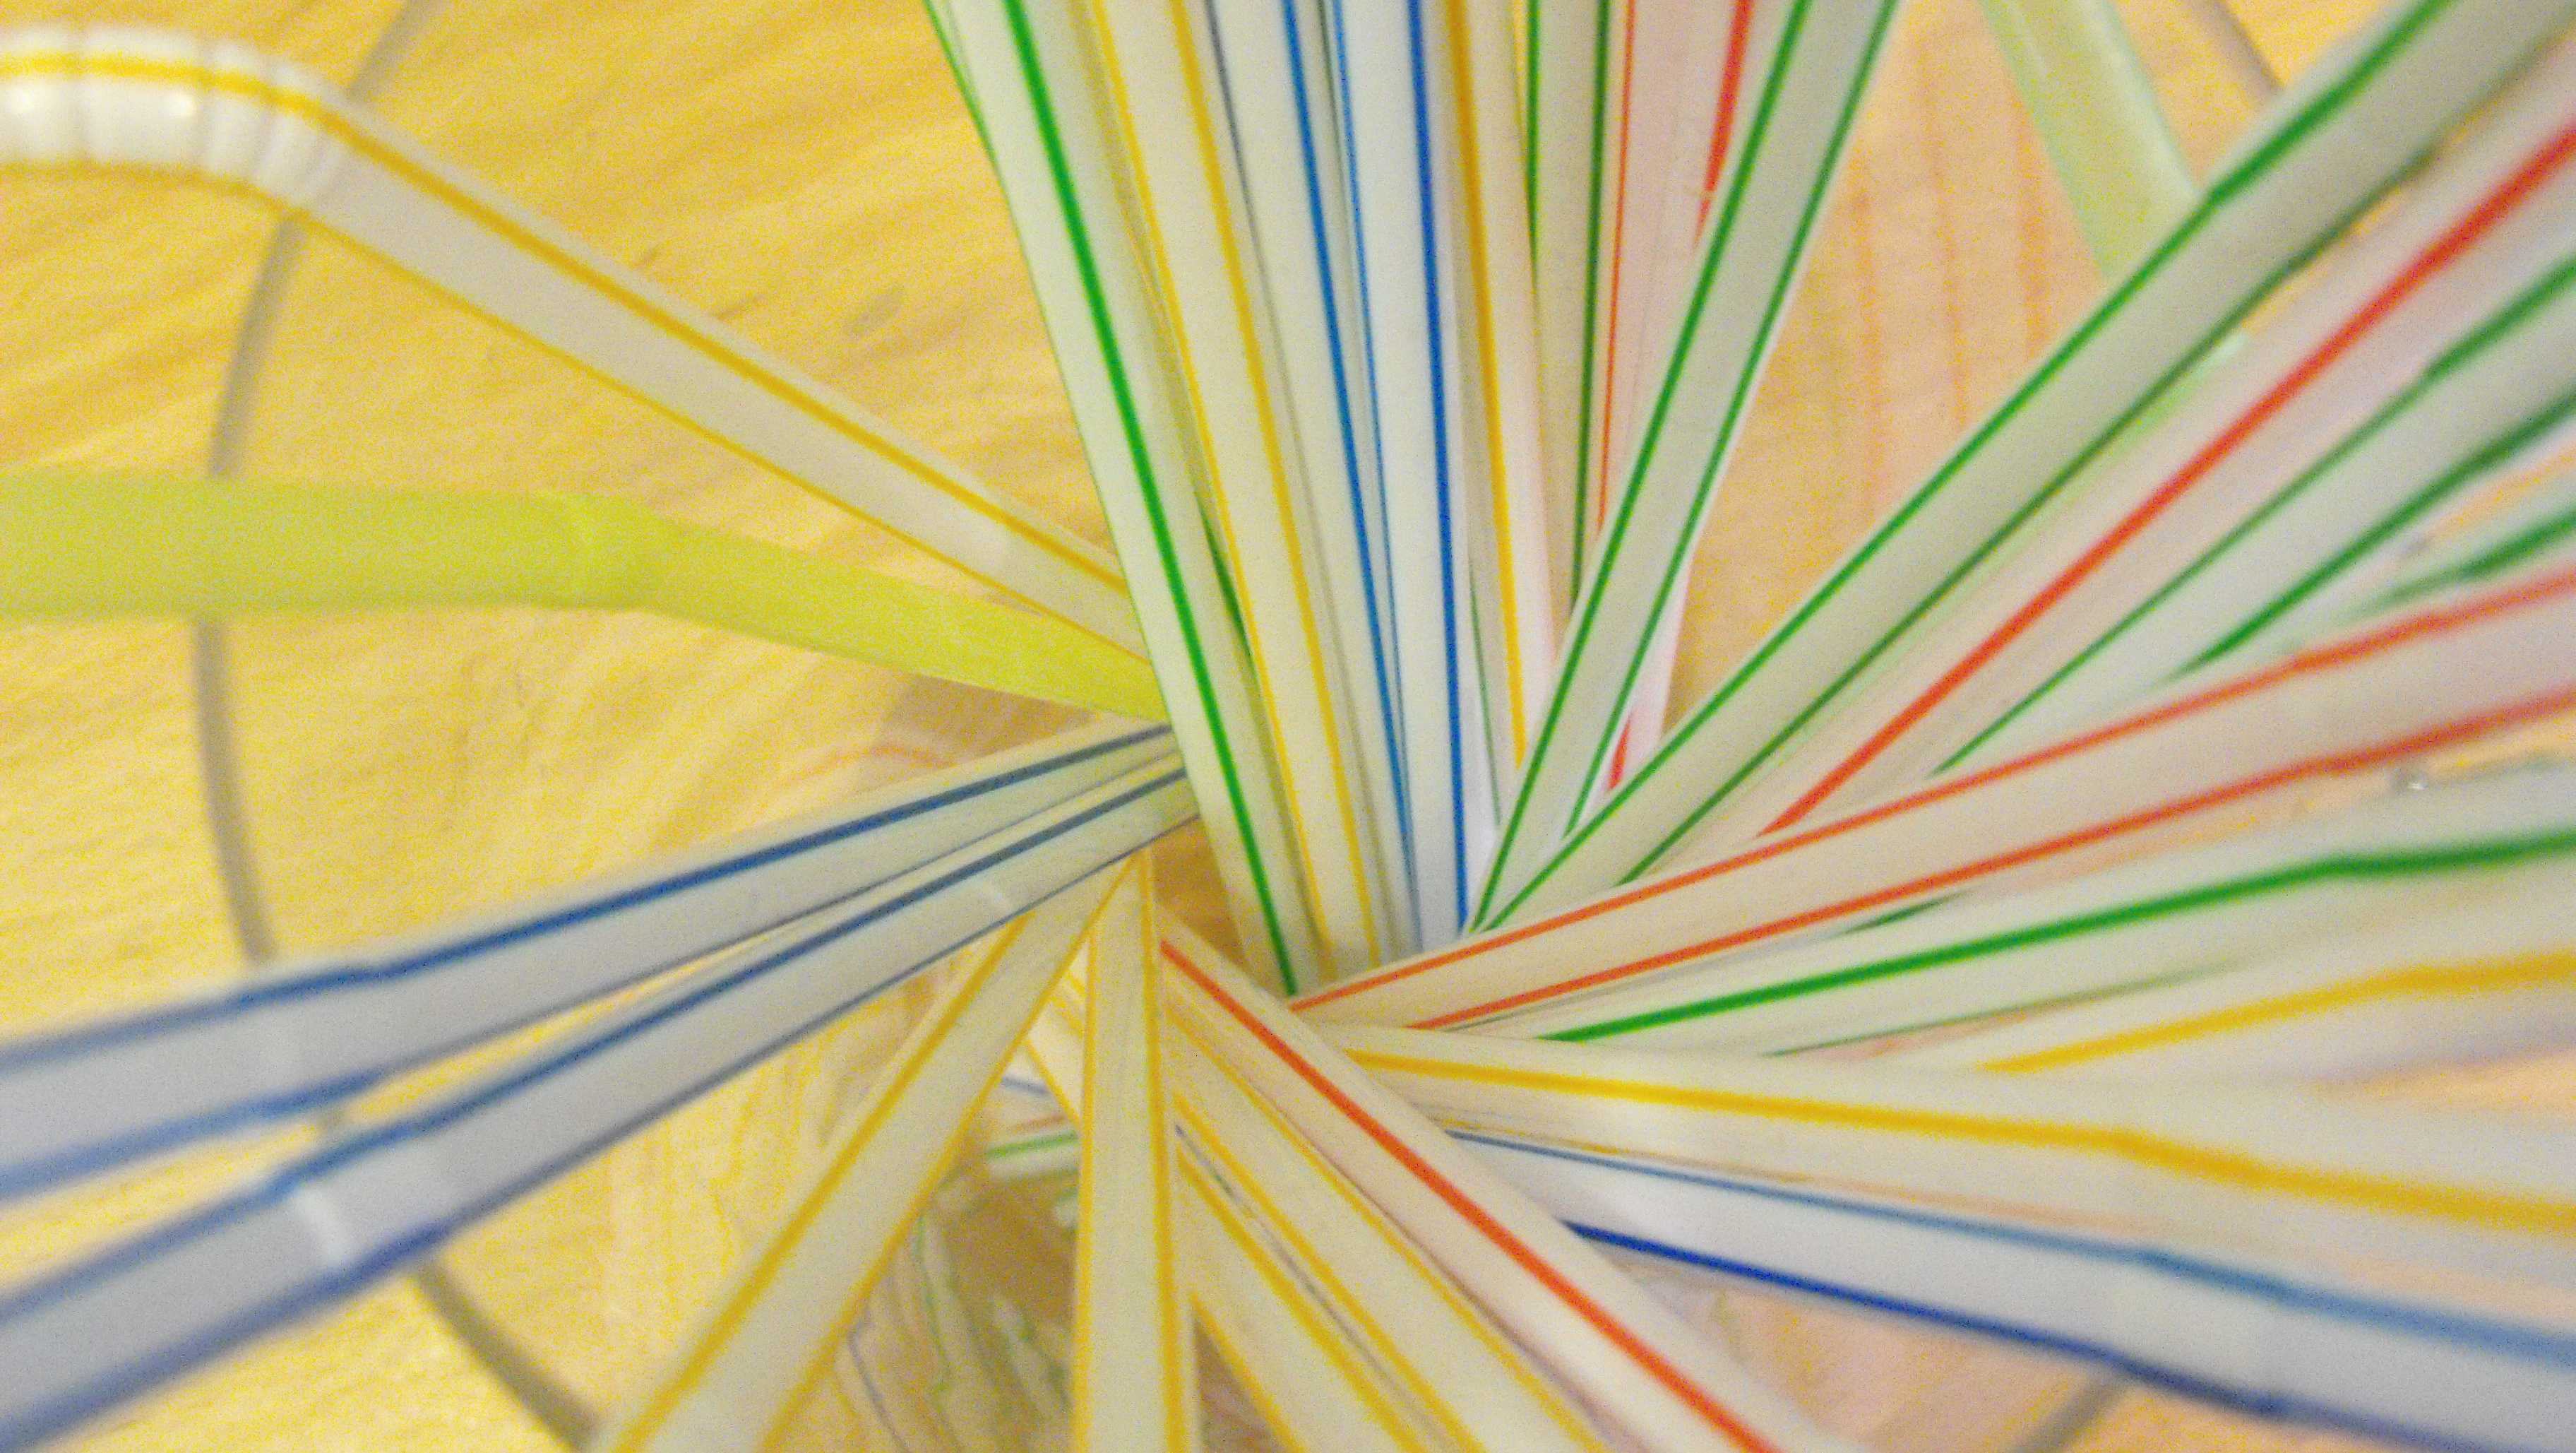 Flickr: Straws